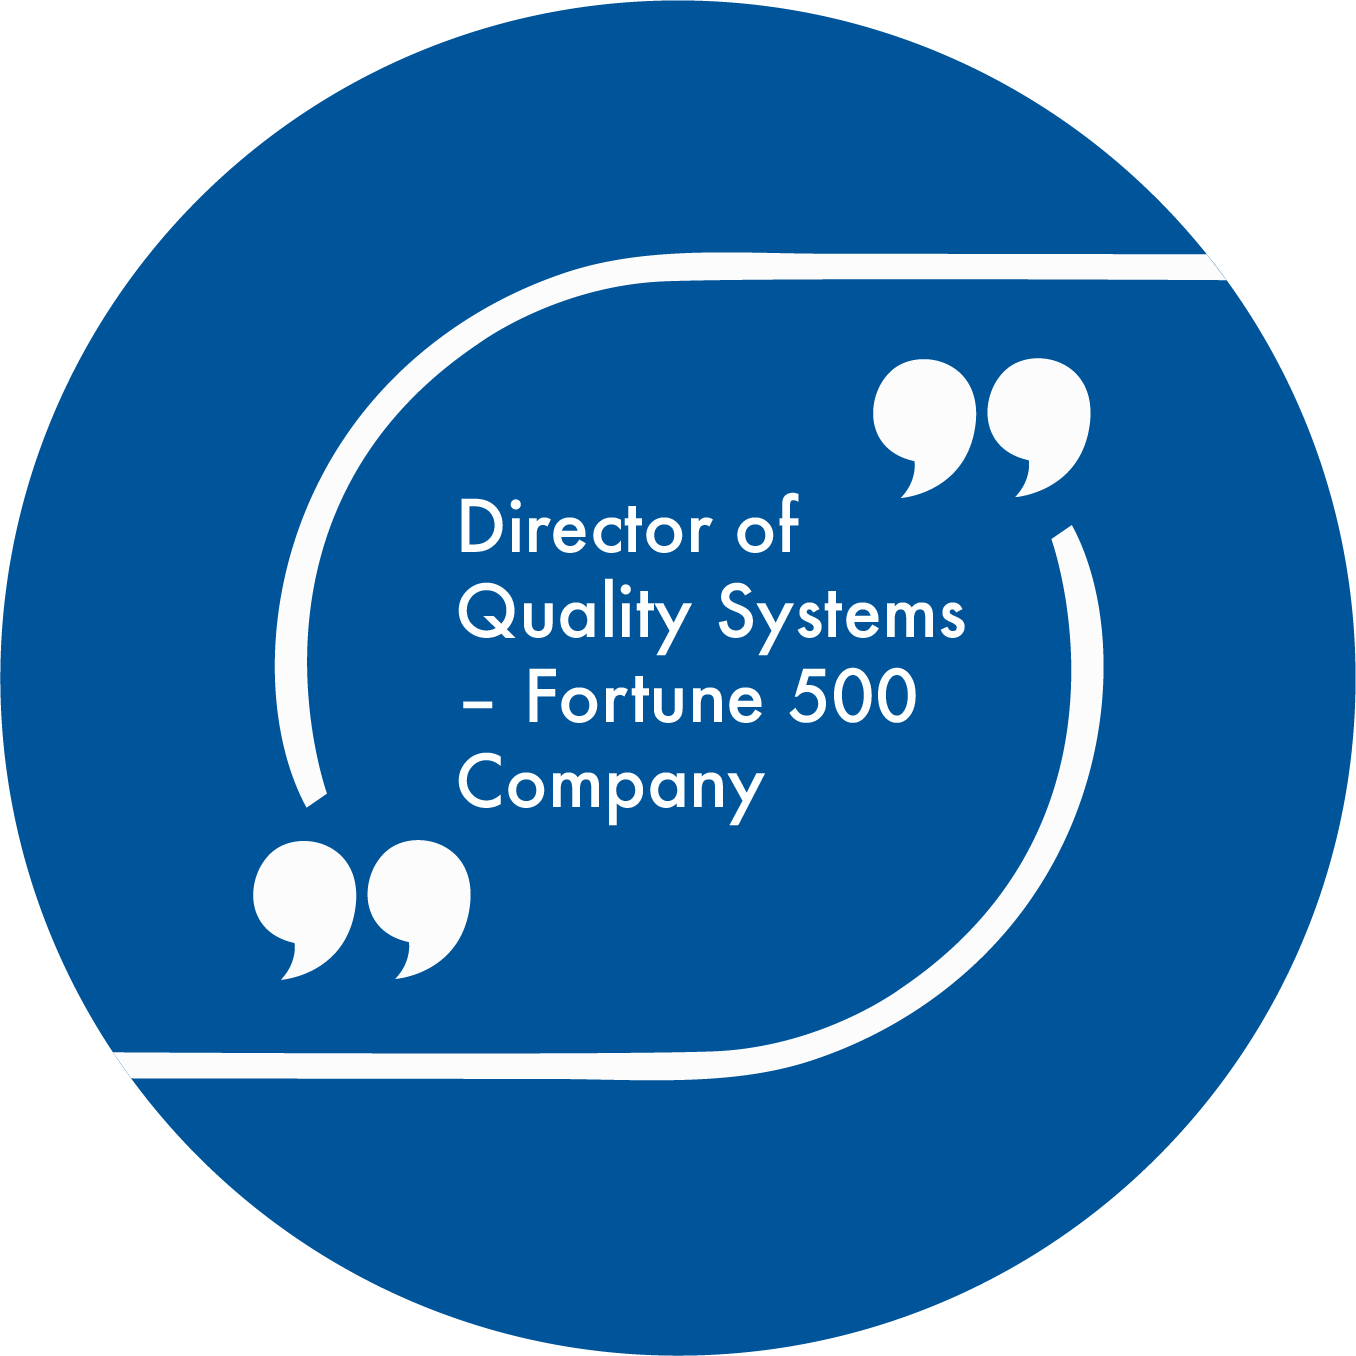 director of quality systems fortune 500 company quote